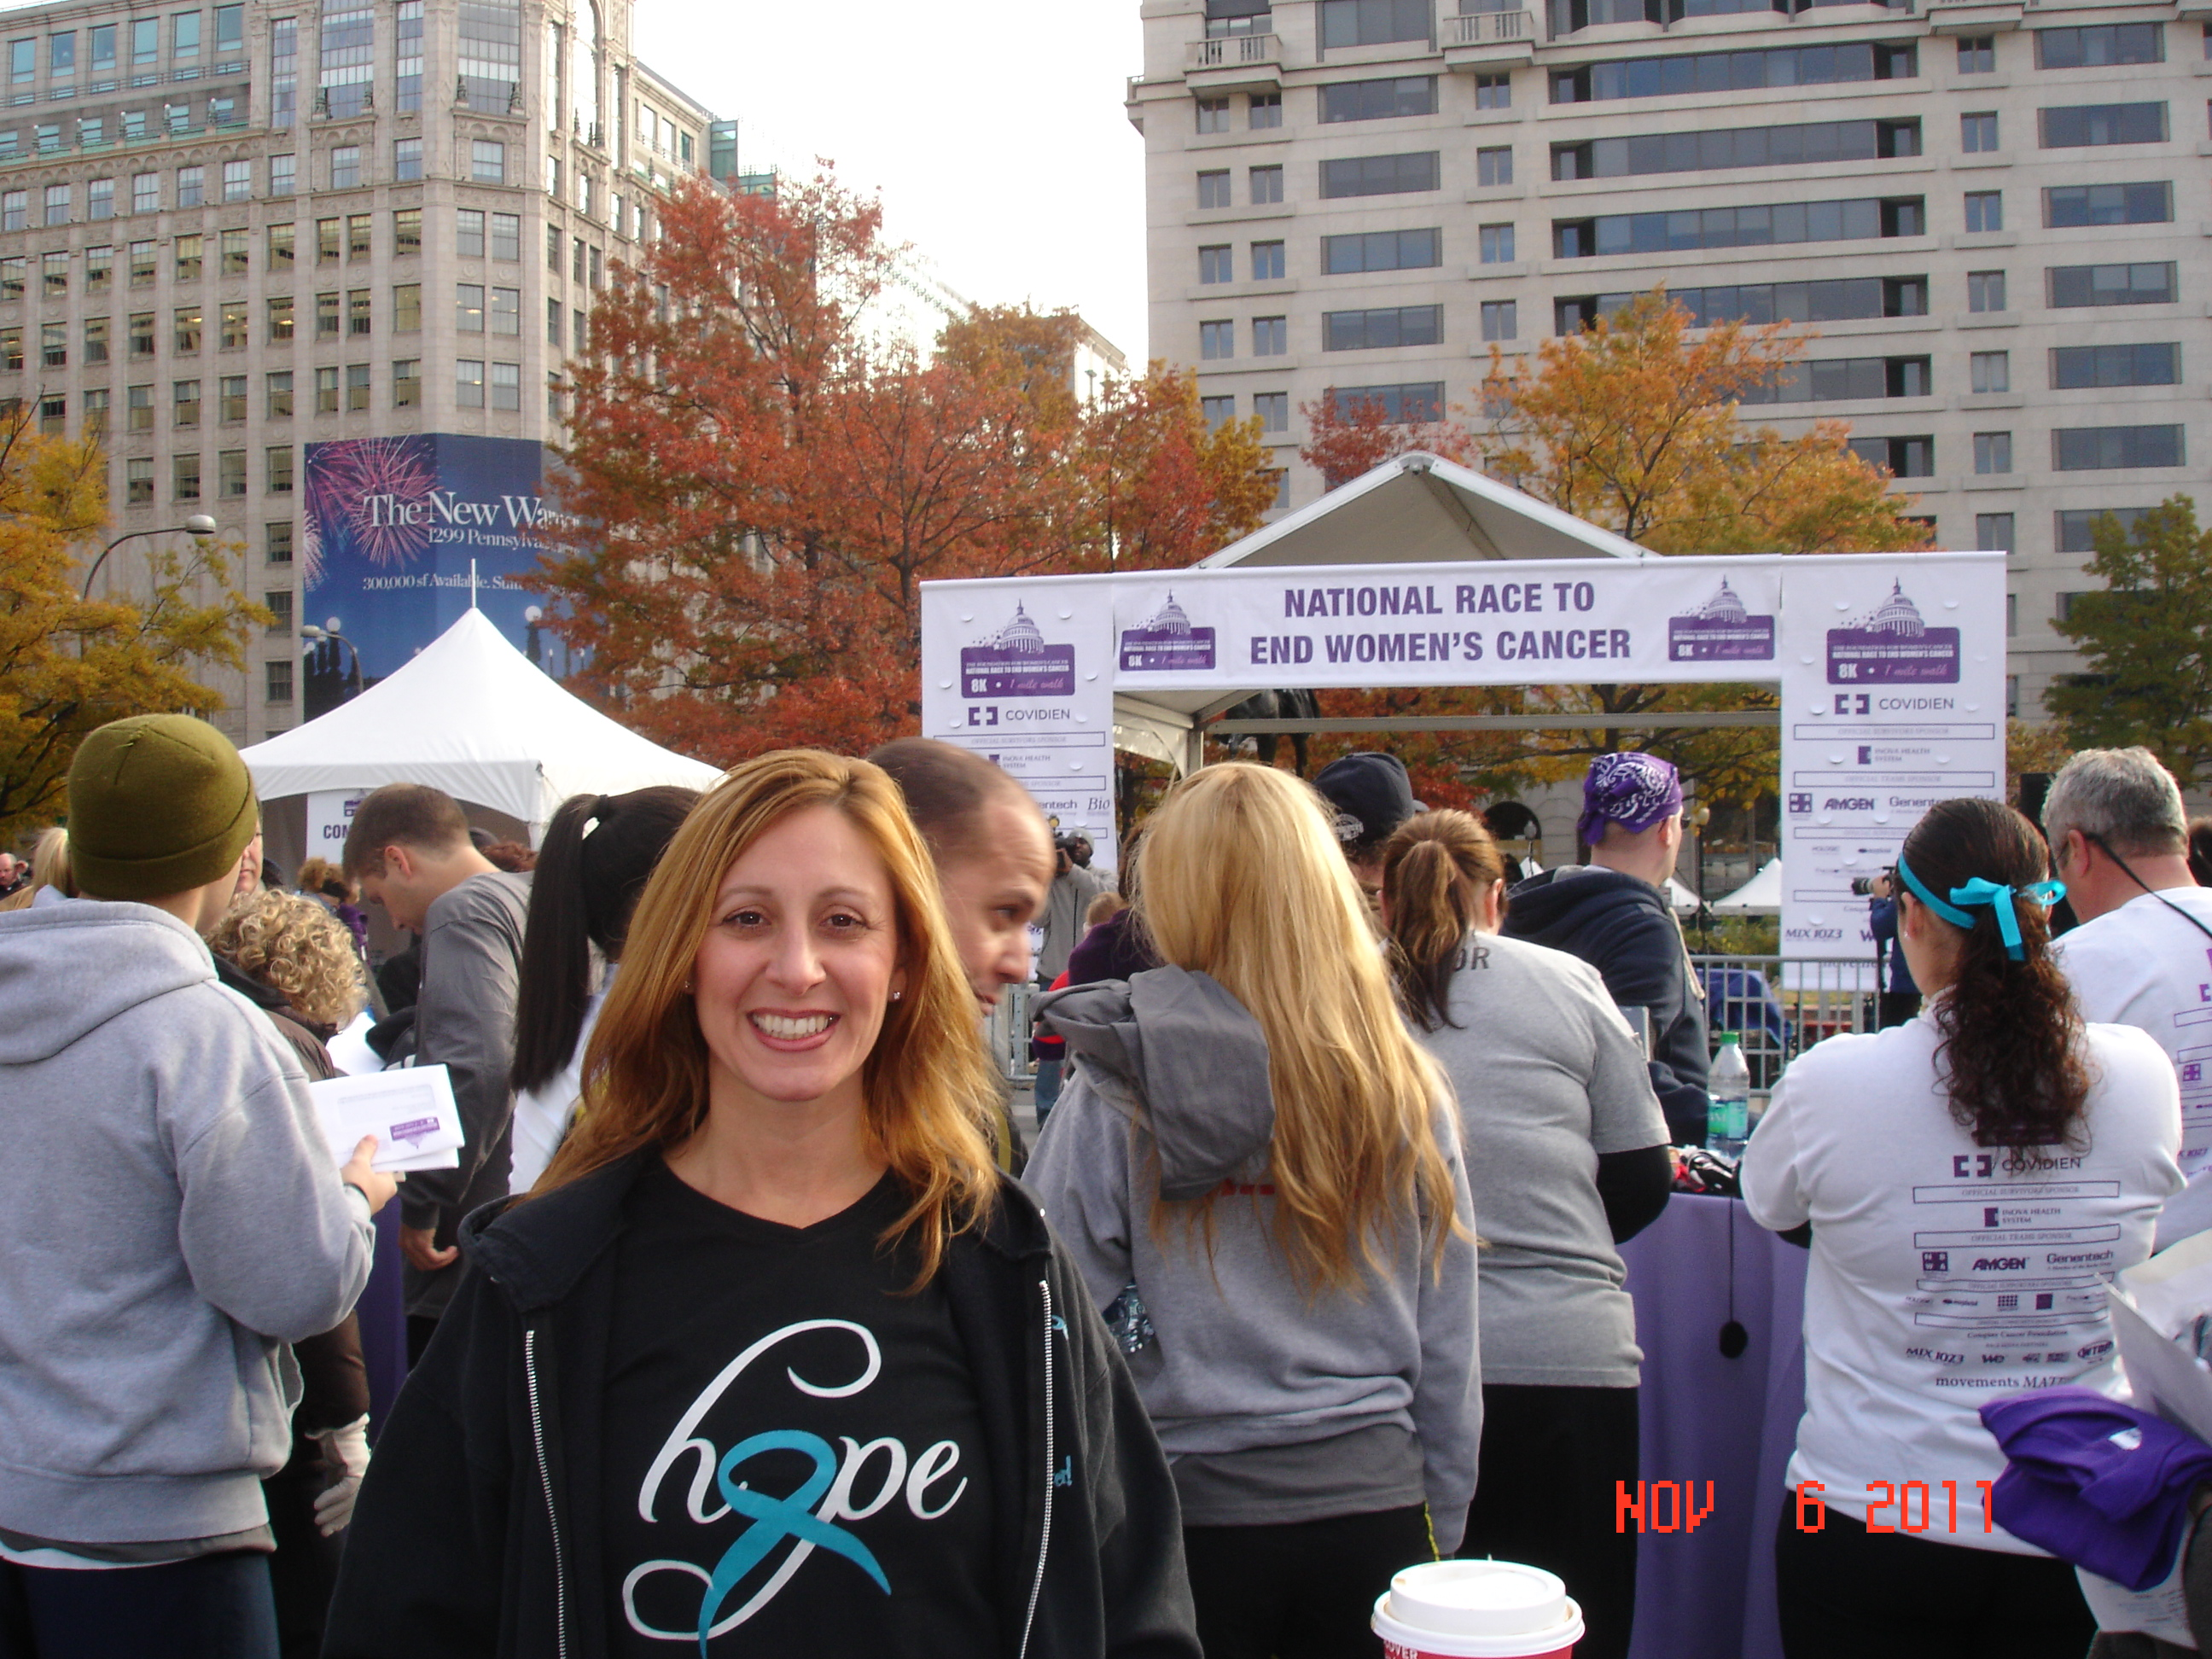 race-to-end-womens-cancer-dc-2011-26